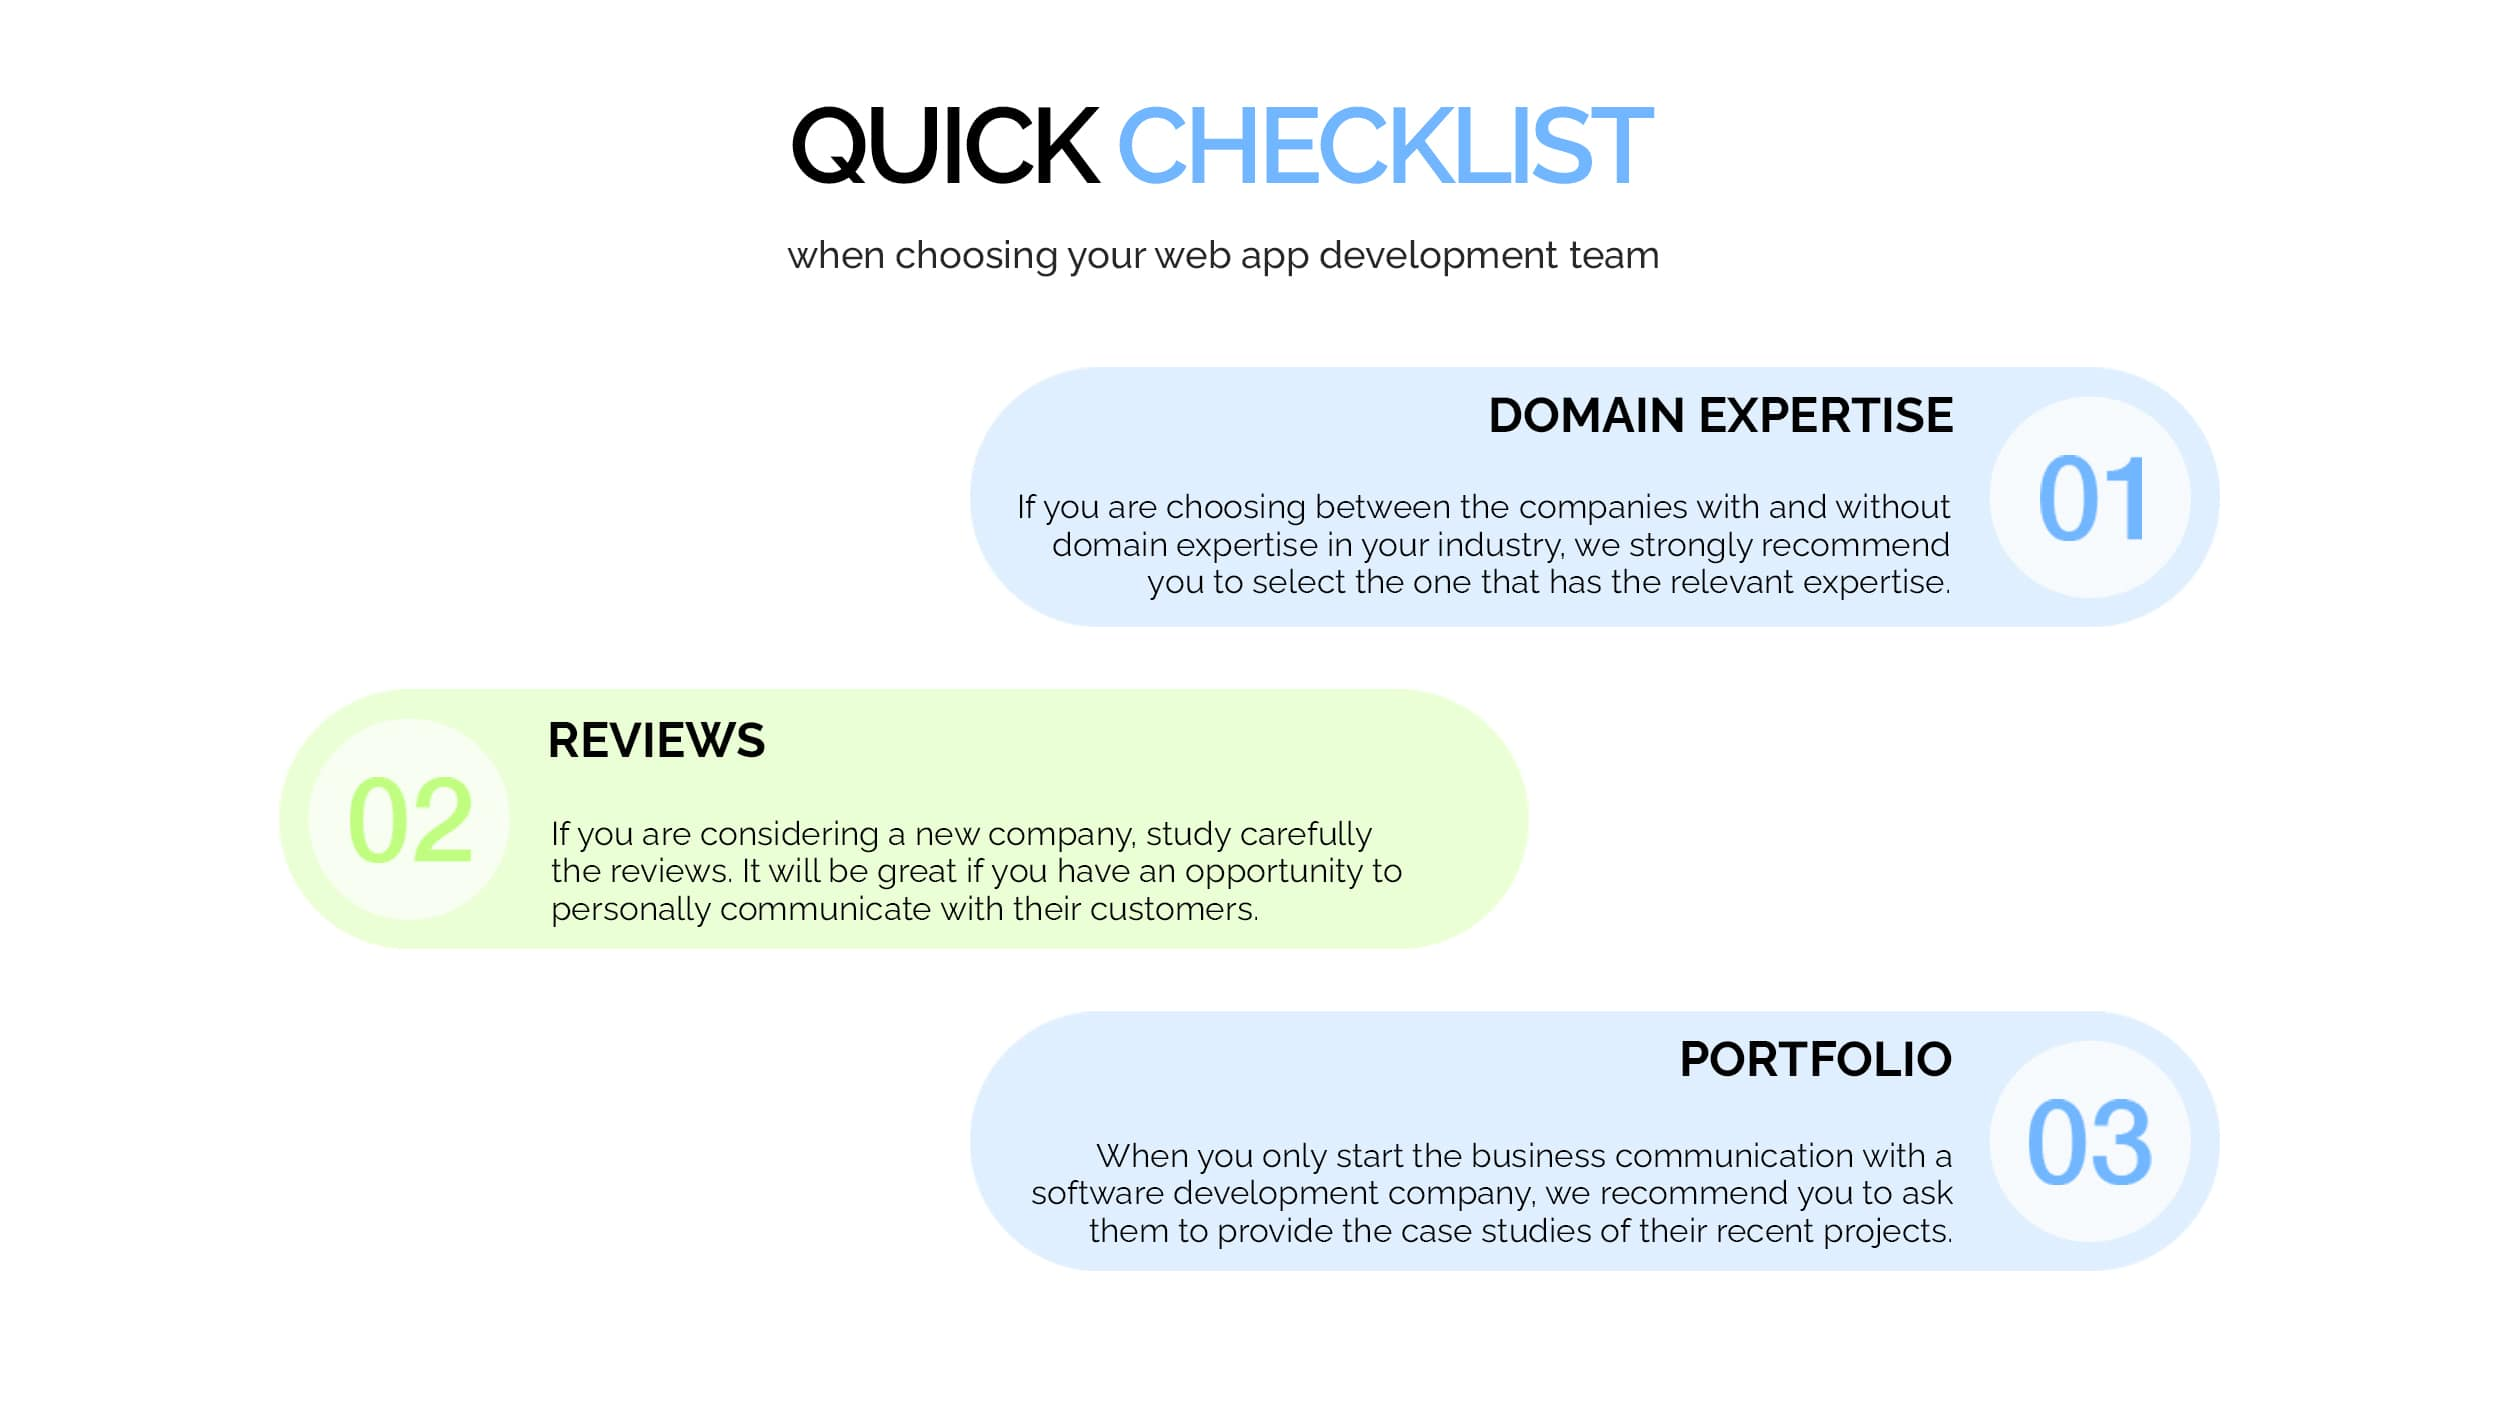 Checklist for choosing web app developers